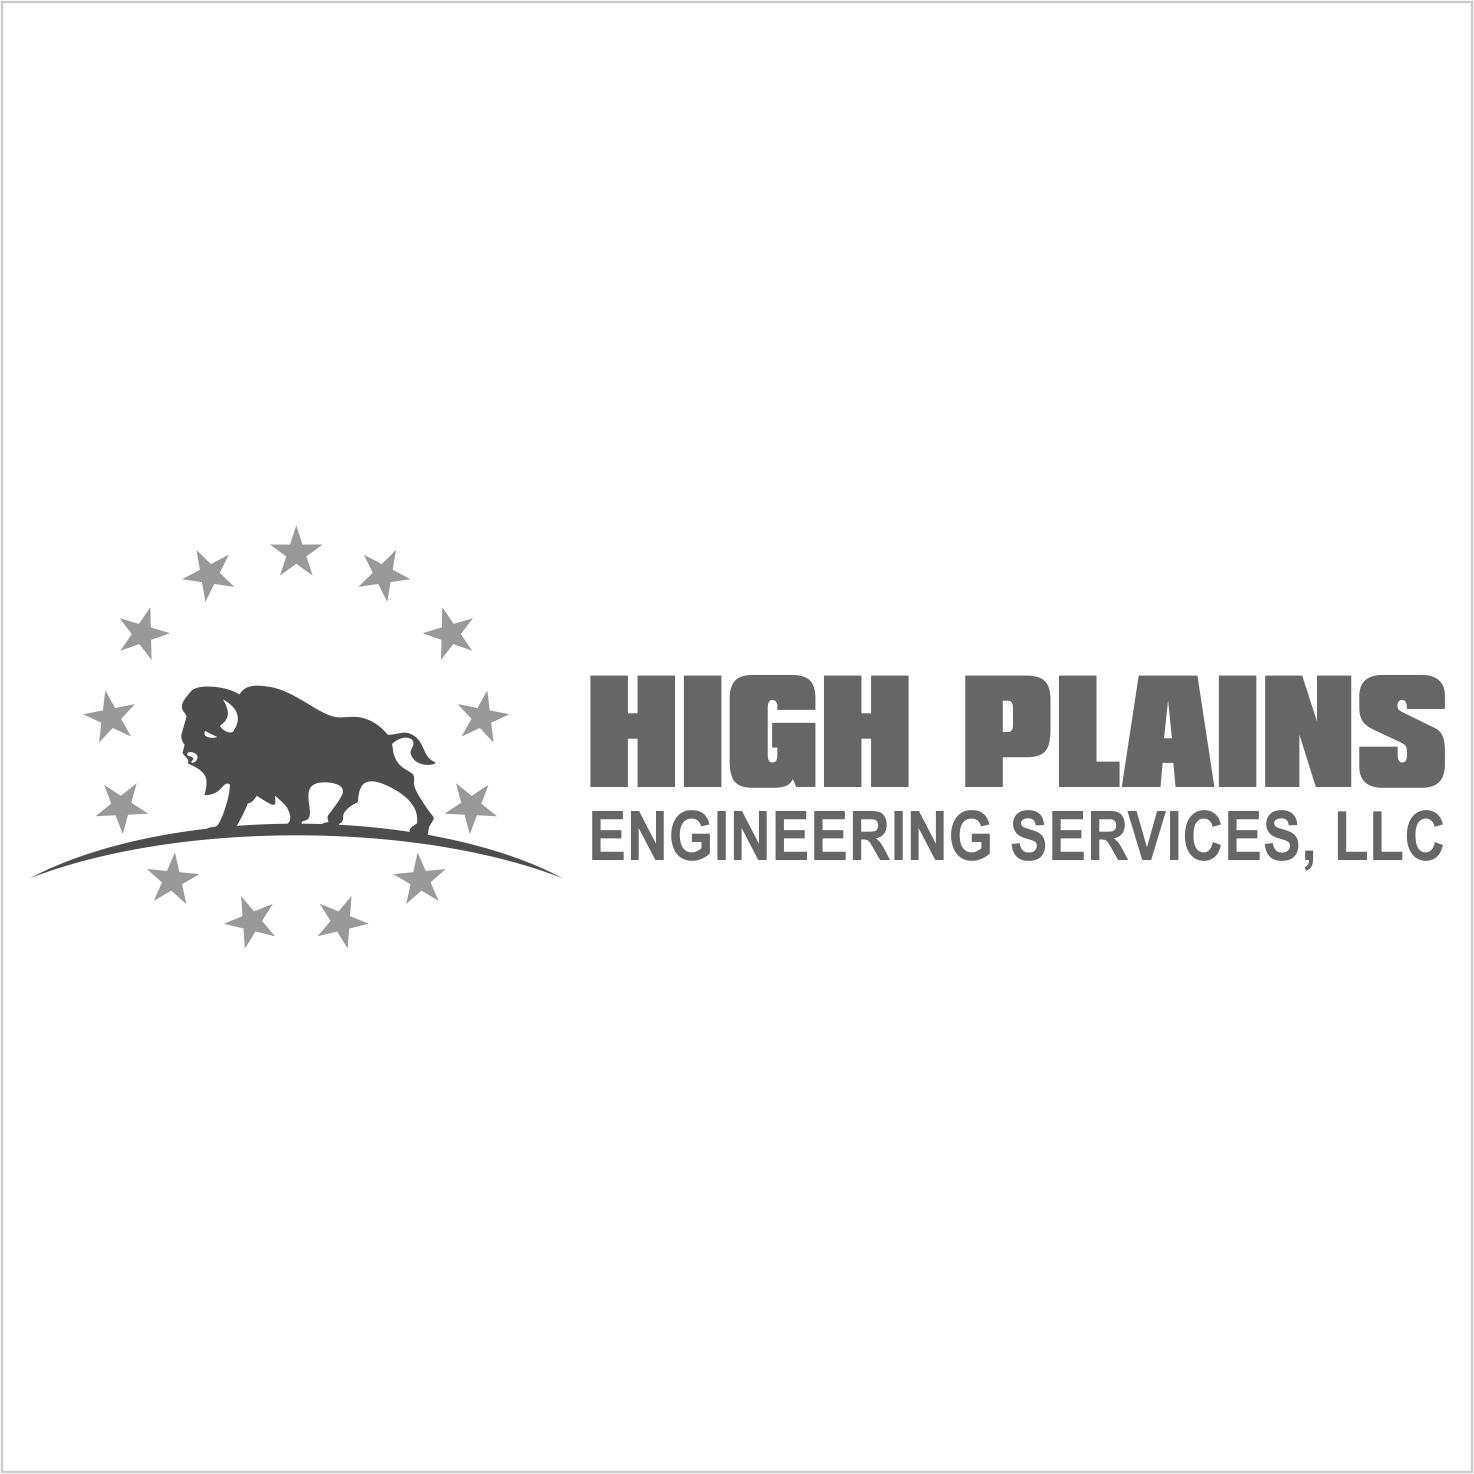 Serious Masculine Engineering Logo Design For High